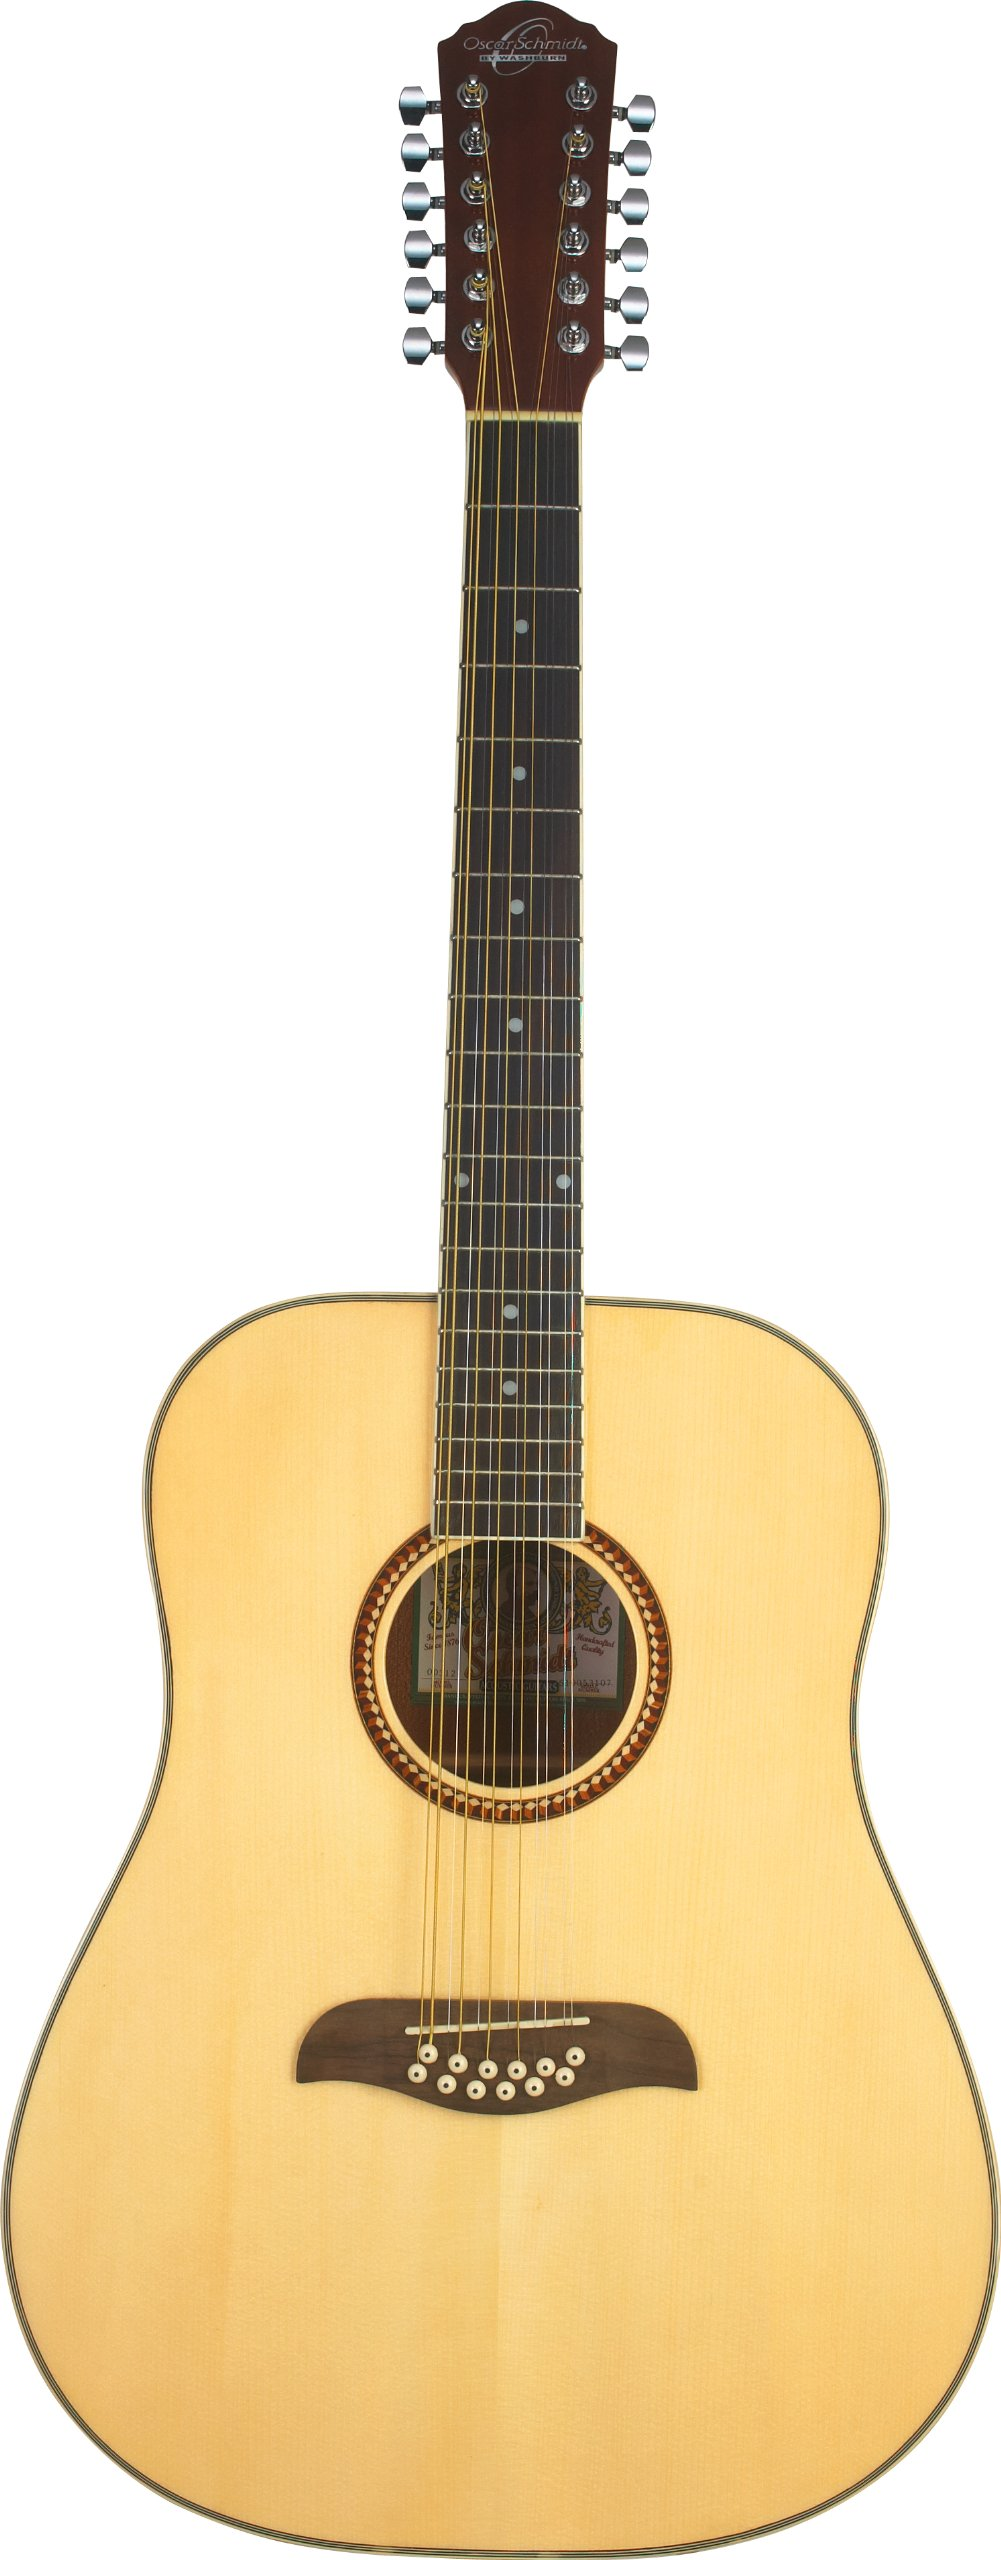 Oscar Schmidt OD312 Natural 12-String Dreadnought Guitar- Natural featuring Handcrafted quality.Rosewood fingerboard & bridge.Fully adjustable truss rod and Chrome die cast tuners by Oscar Schmidt